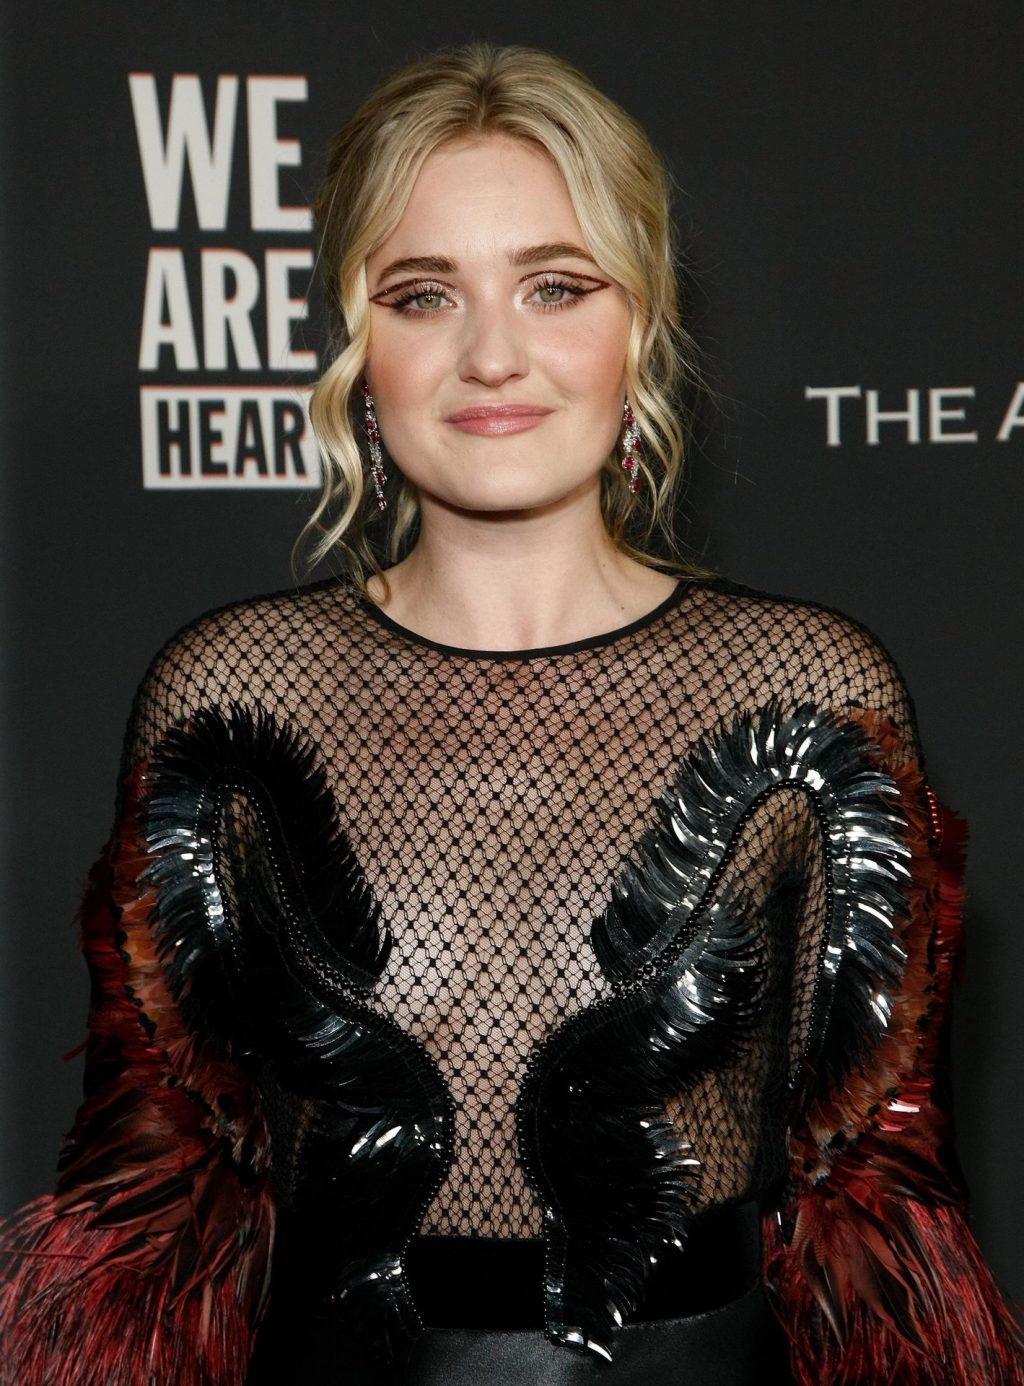 AJ Michalka Shows Her Tits at The Art of Elysium's Event (13 Photos)